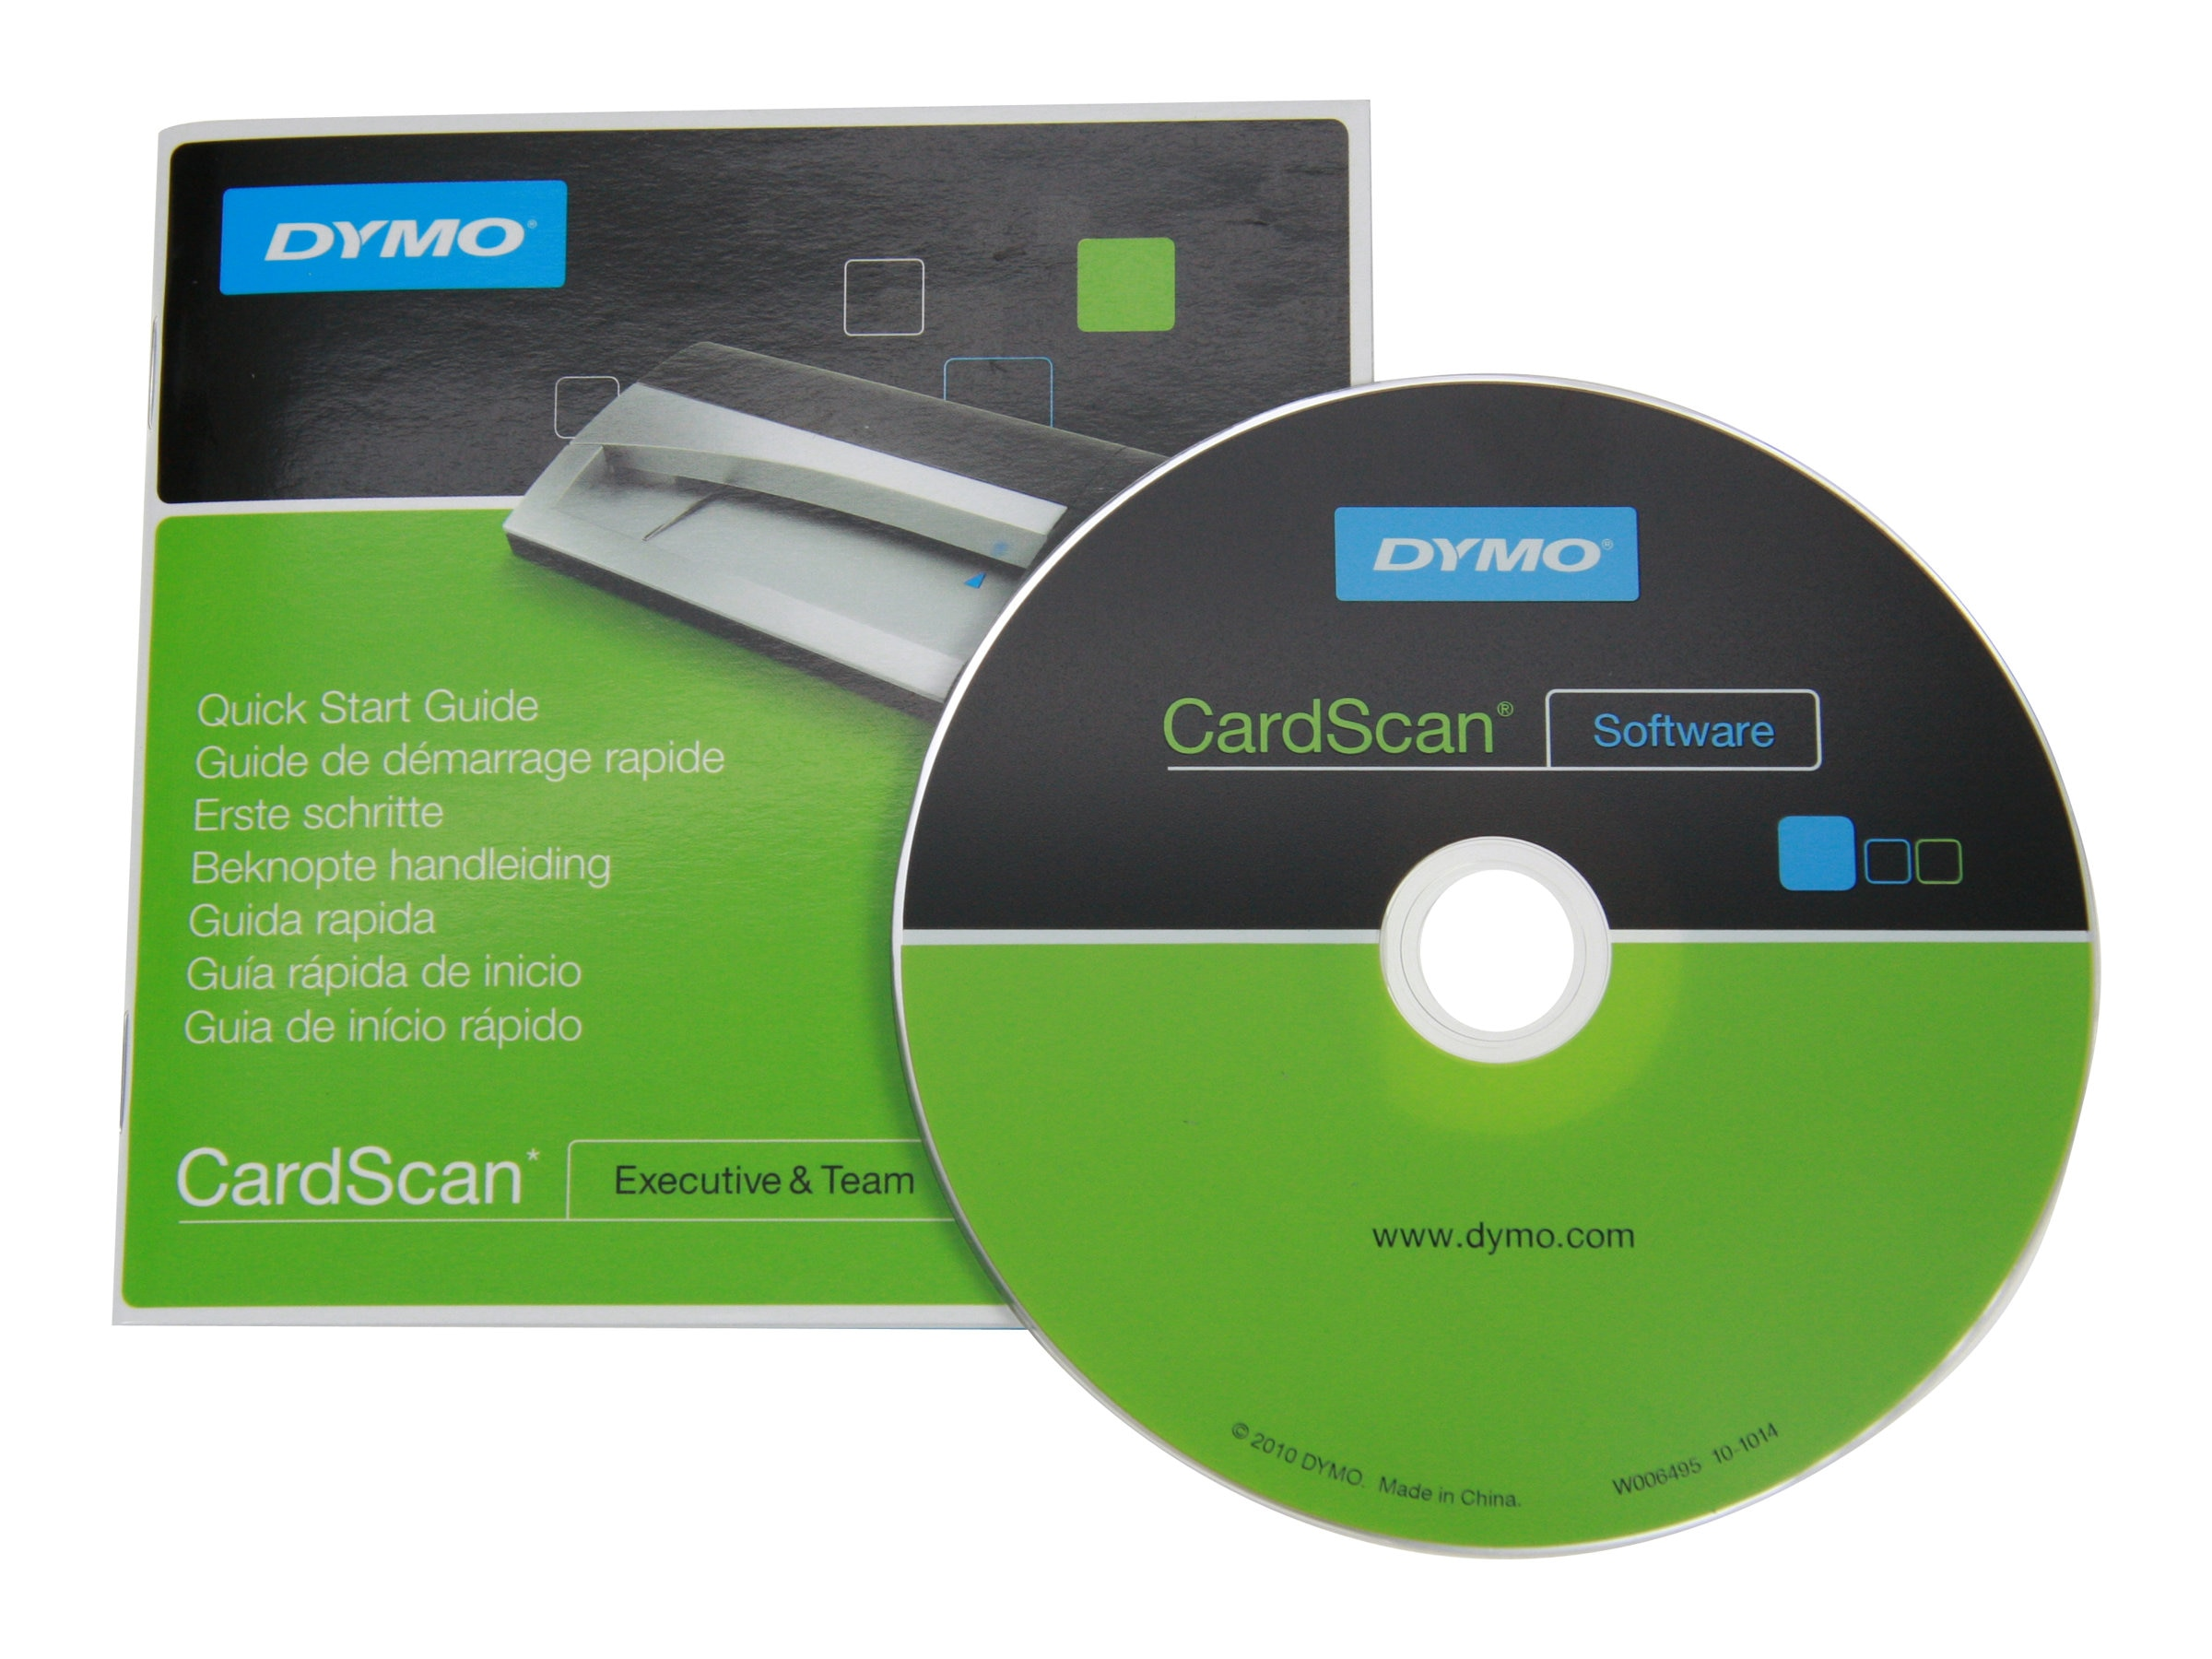 DYMO CardScan Team 9.0 5-user SW CD-ROM, 1806067